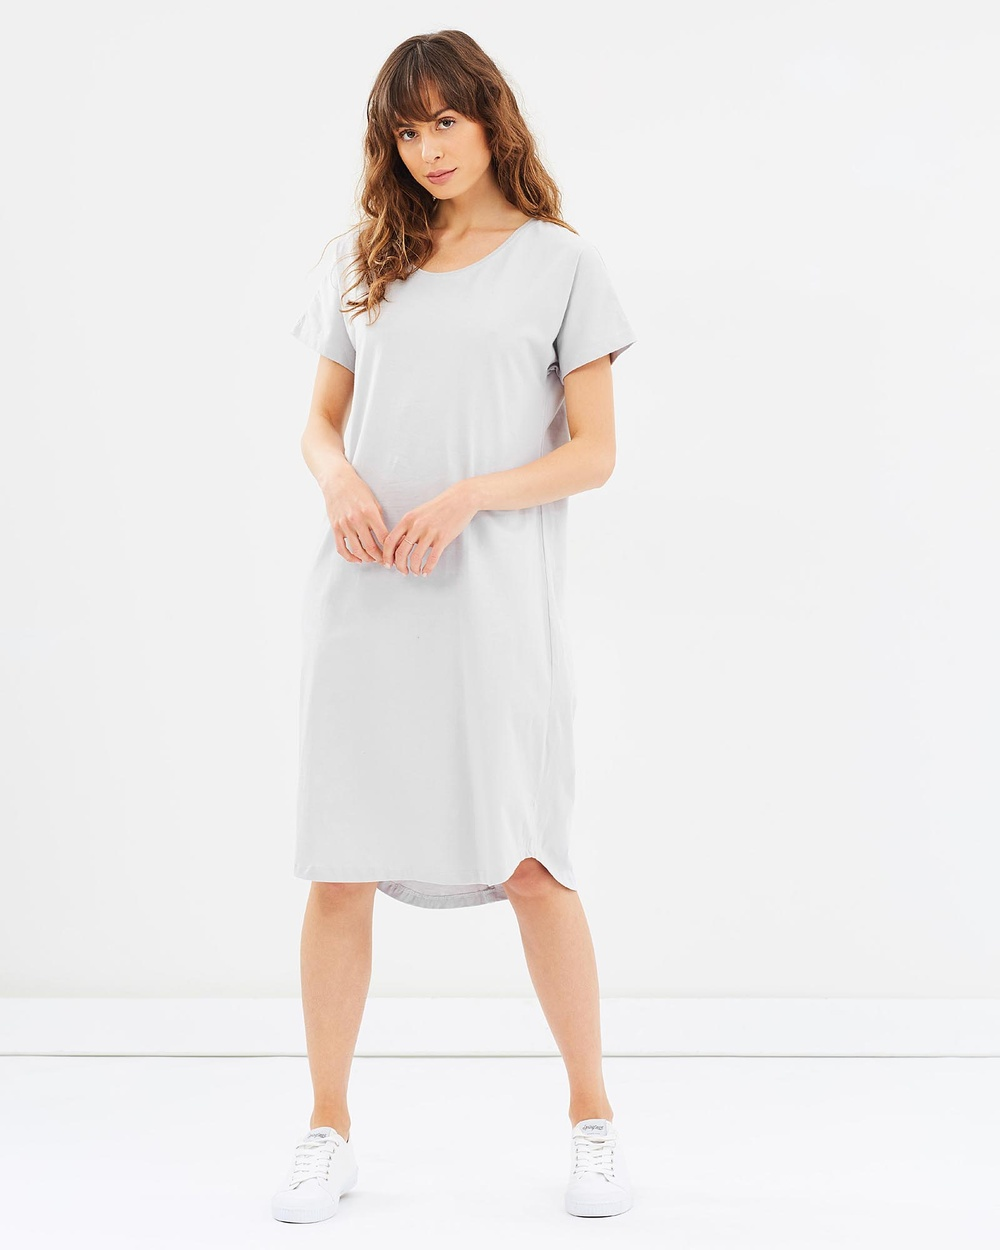 Cloth & Co. Organic Cotton Long T Shirt Dress Dresses Grey Organic Cotton Long T-Shirt Dress